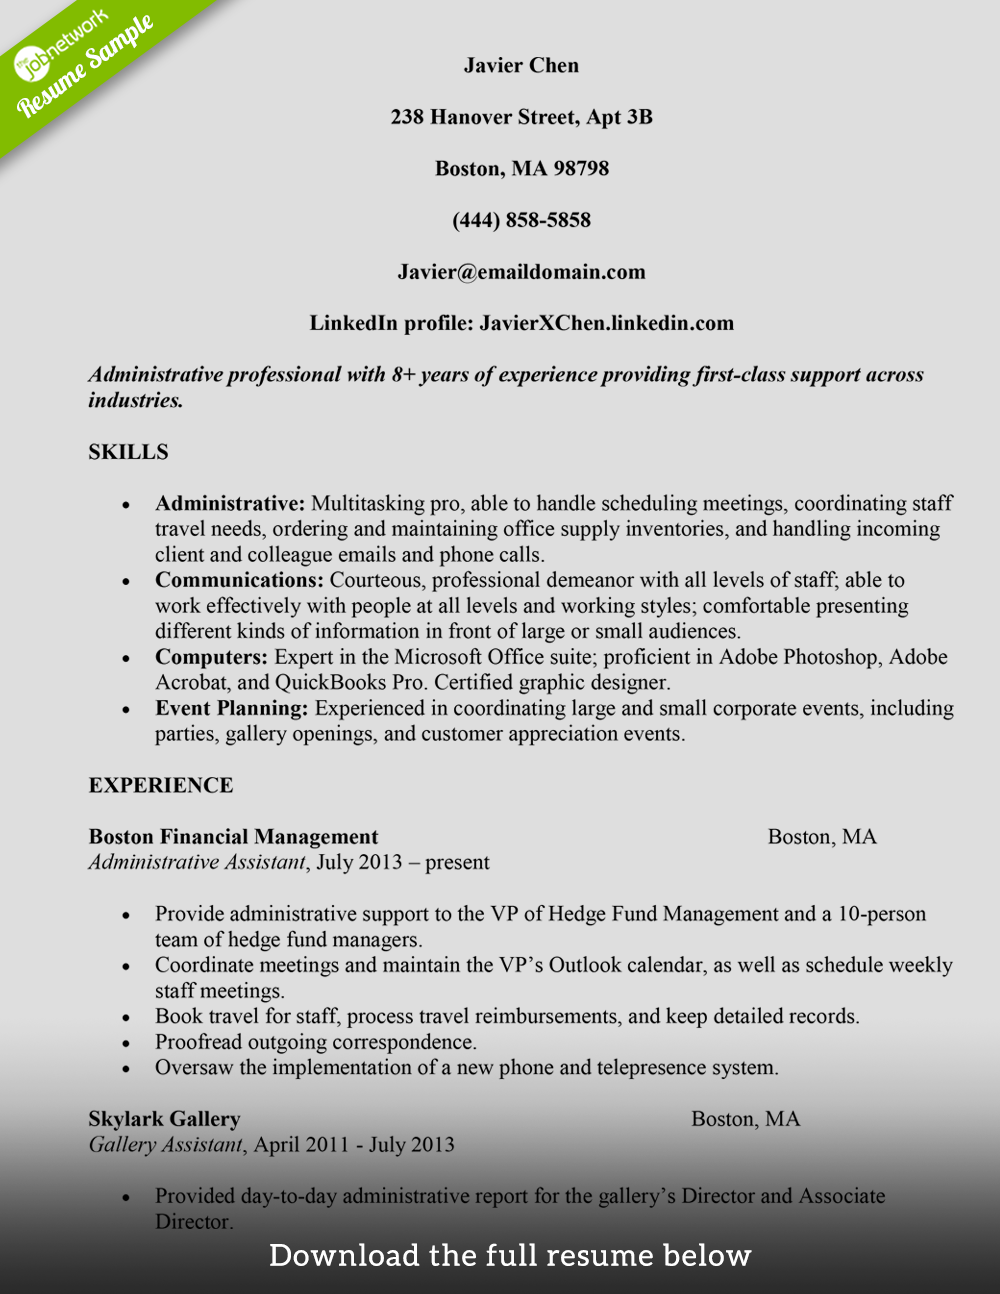 administrative assistant resume javier chen - Example Of Administrative Assistant Resume